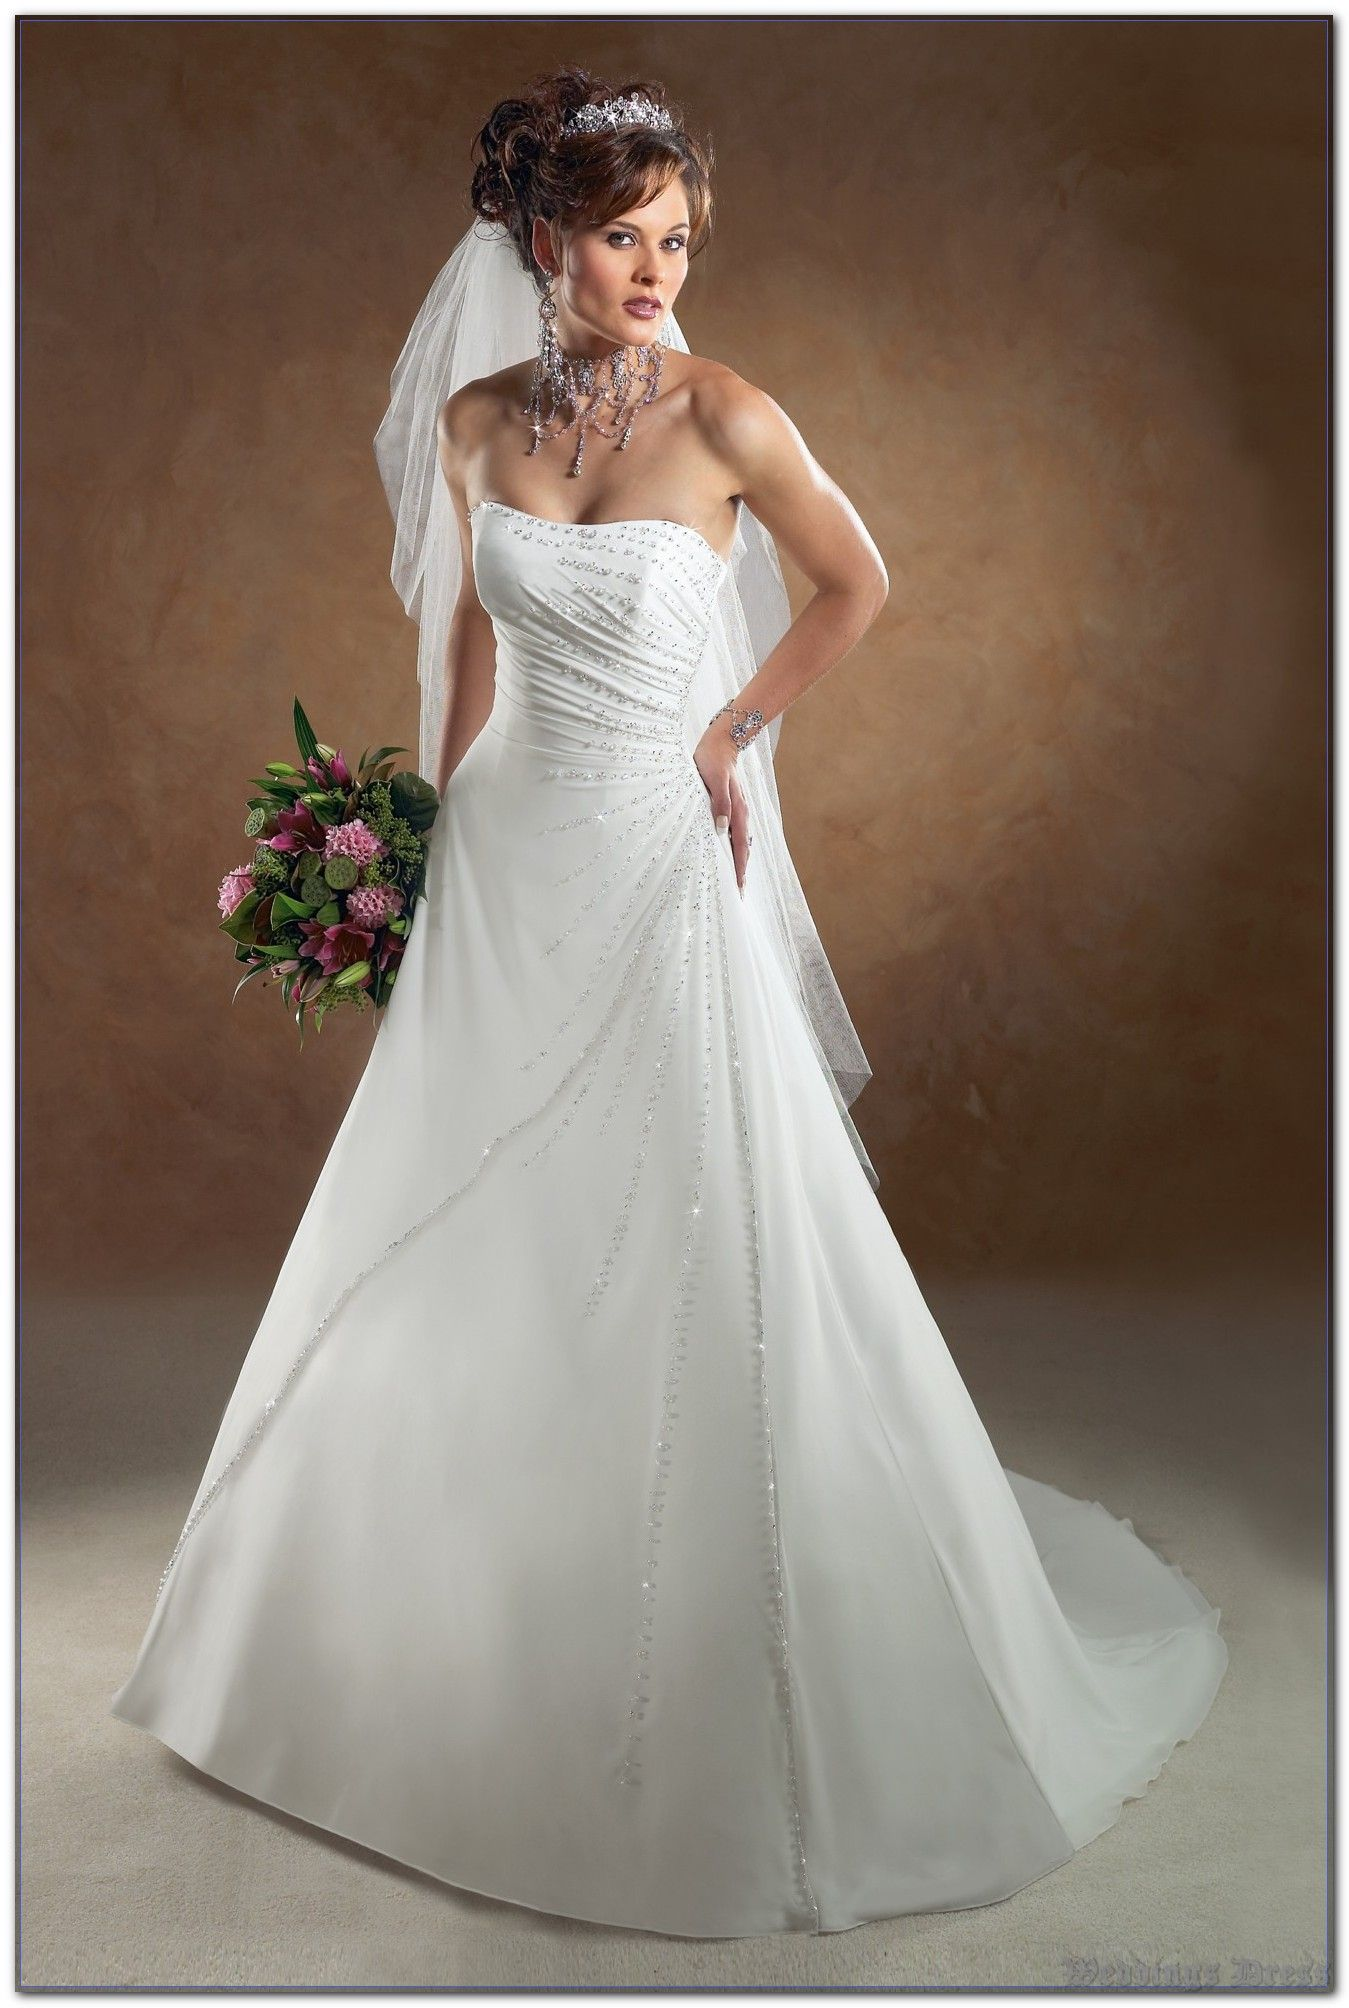 The Ugly Truth About Weddings Dress